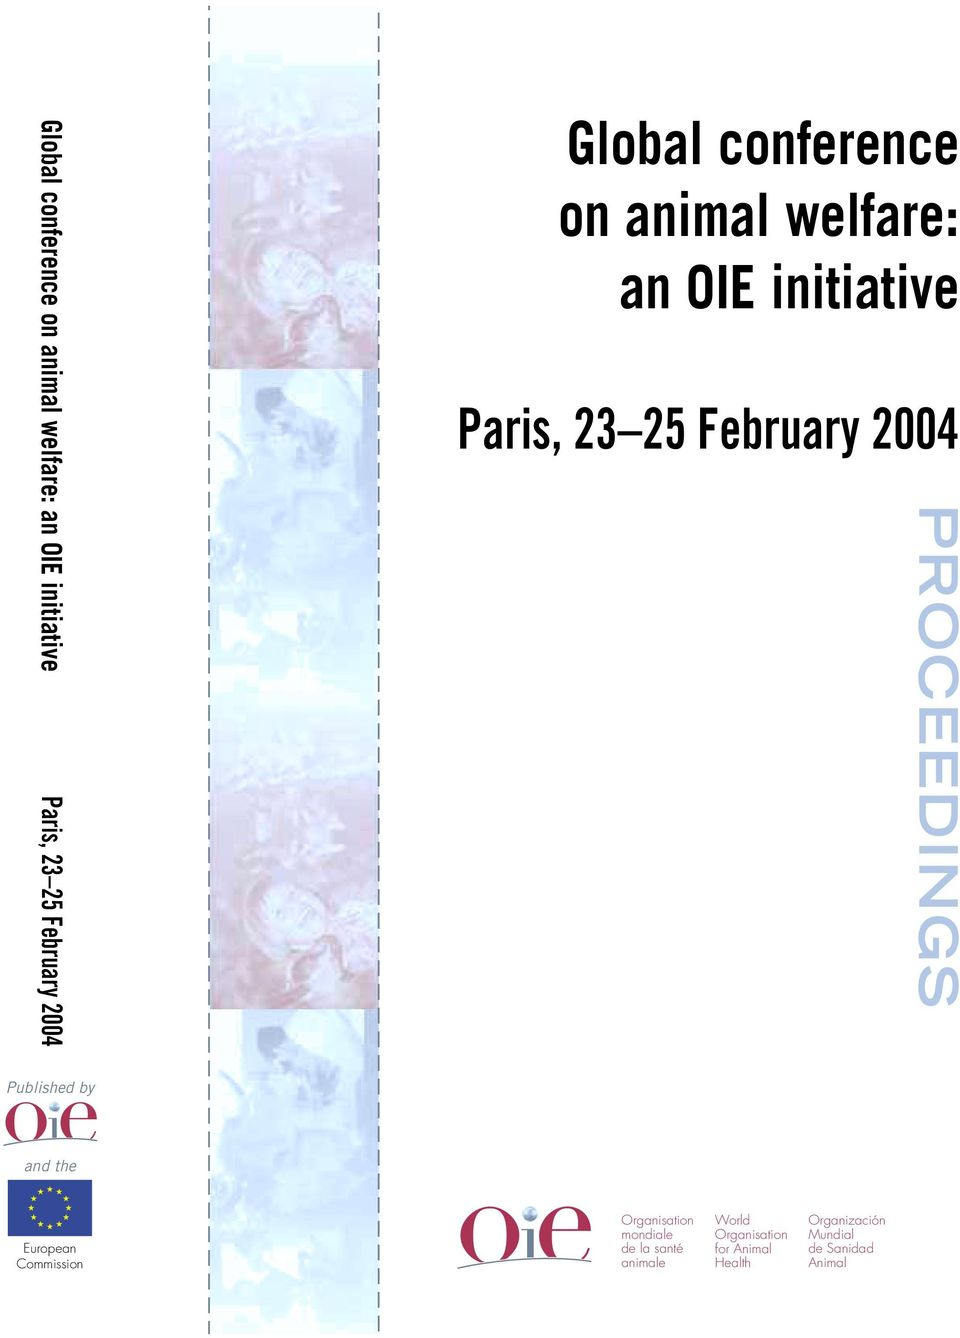 santé animale World Organisation for Animal Health Organización Mundial de Sanidad